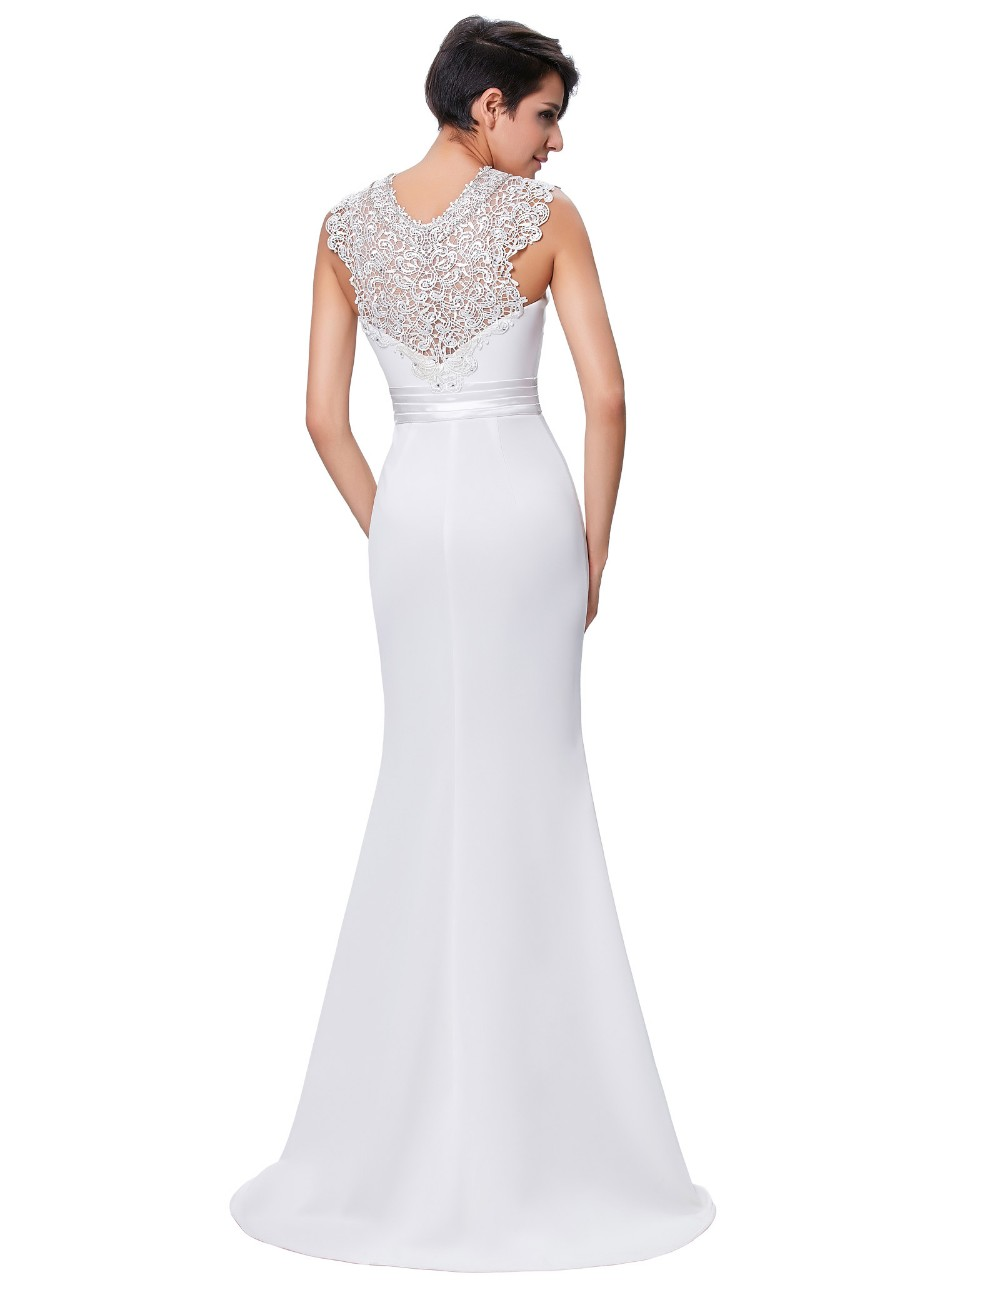 Kate Kasin Floor-Length Sleeveless Spandex Long White Prom Dress Party Dress Evening Dress 8 Size US 2~16 KK000146-1